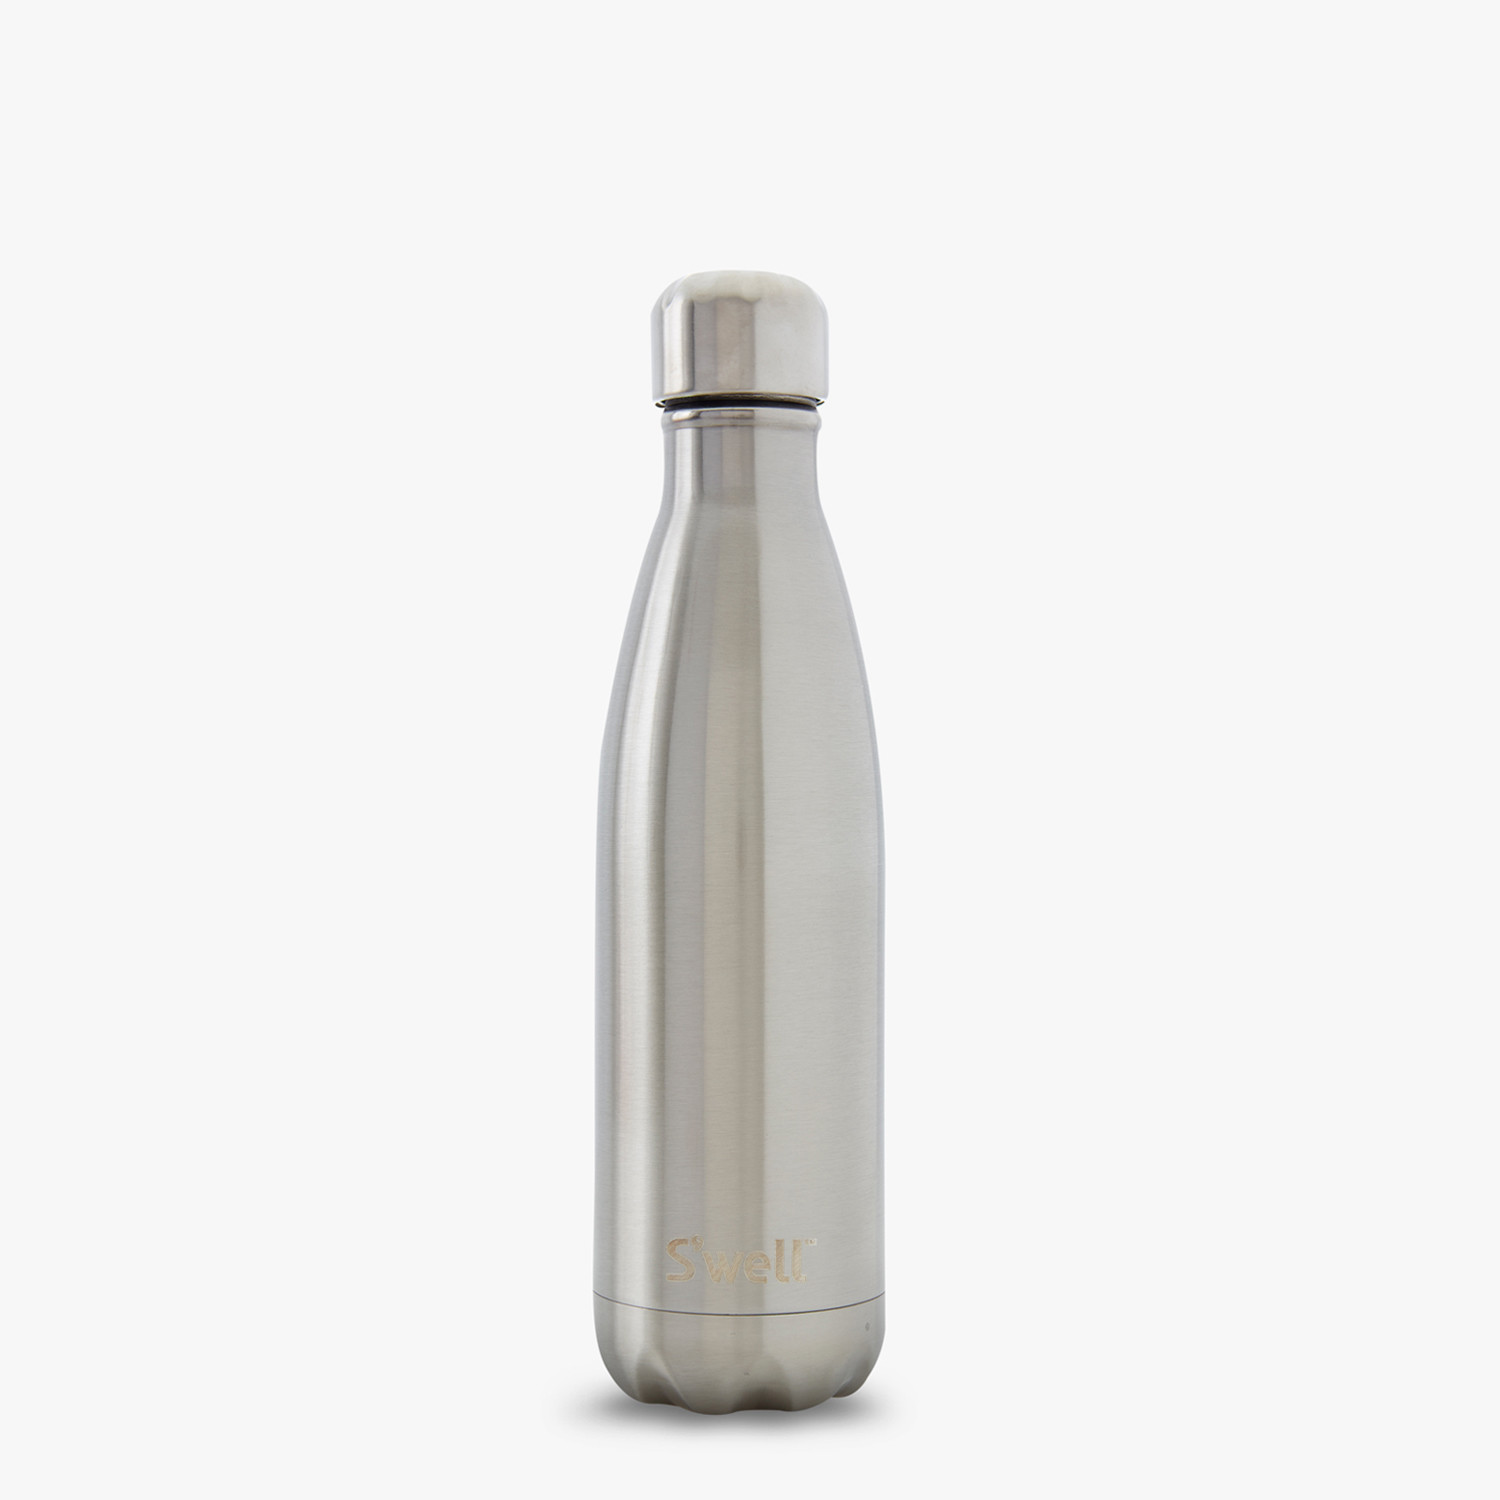 S'Well: Insulated Drink Bottle Silver